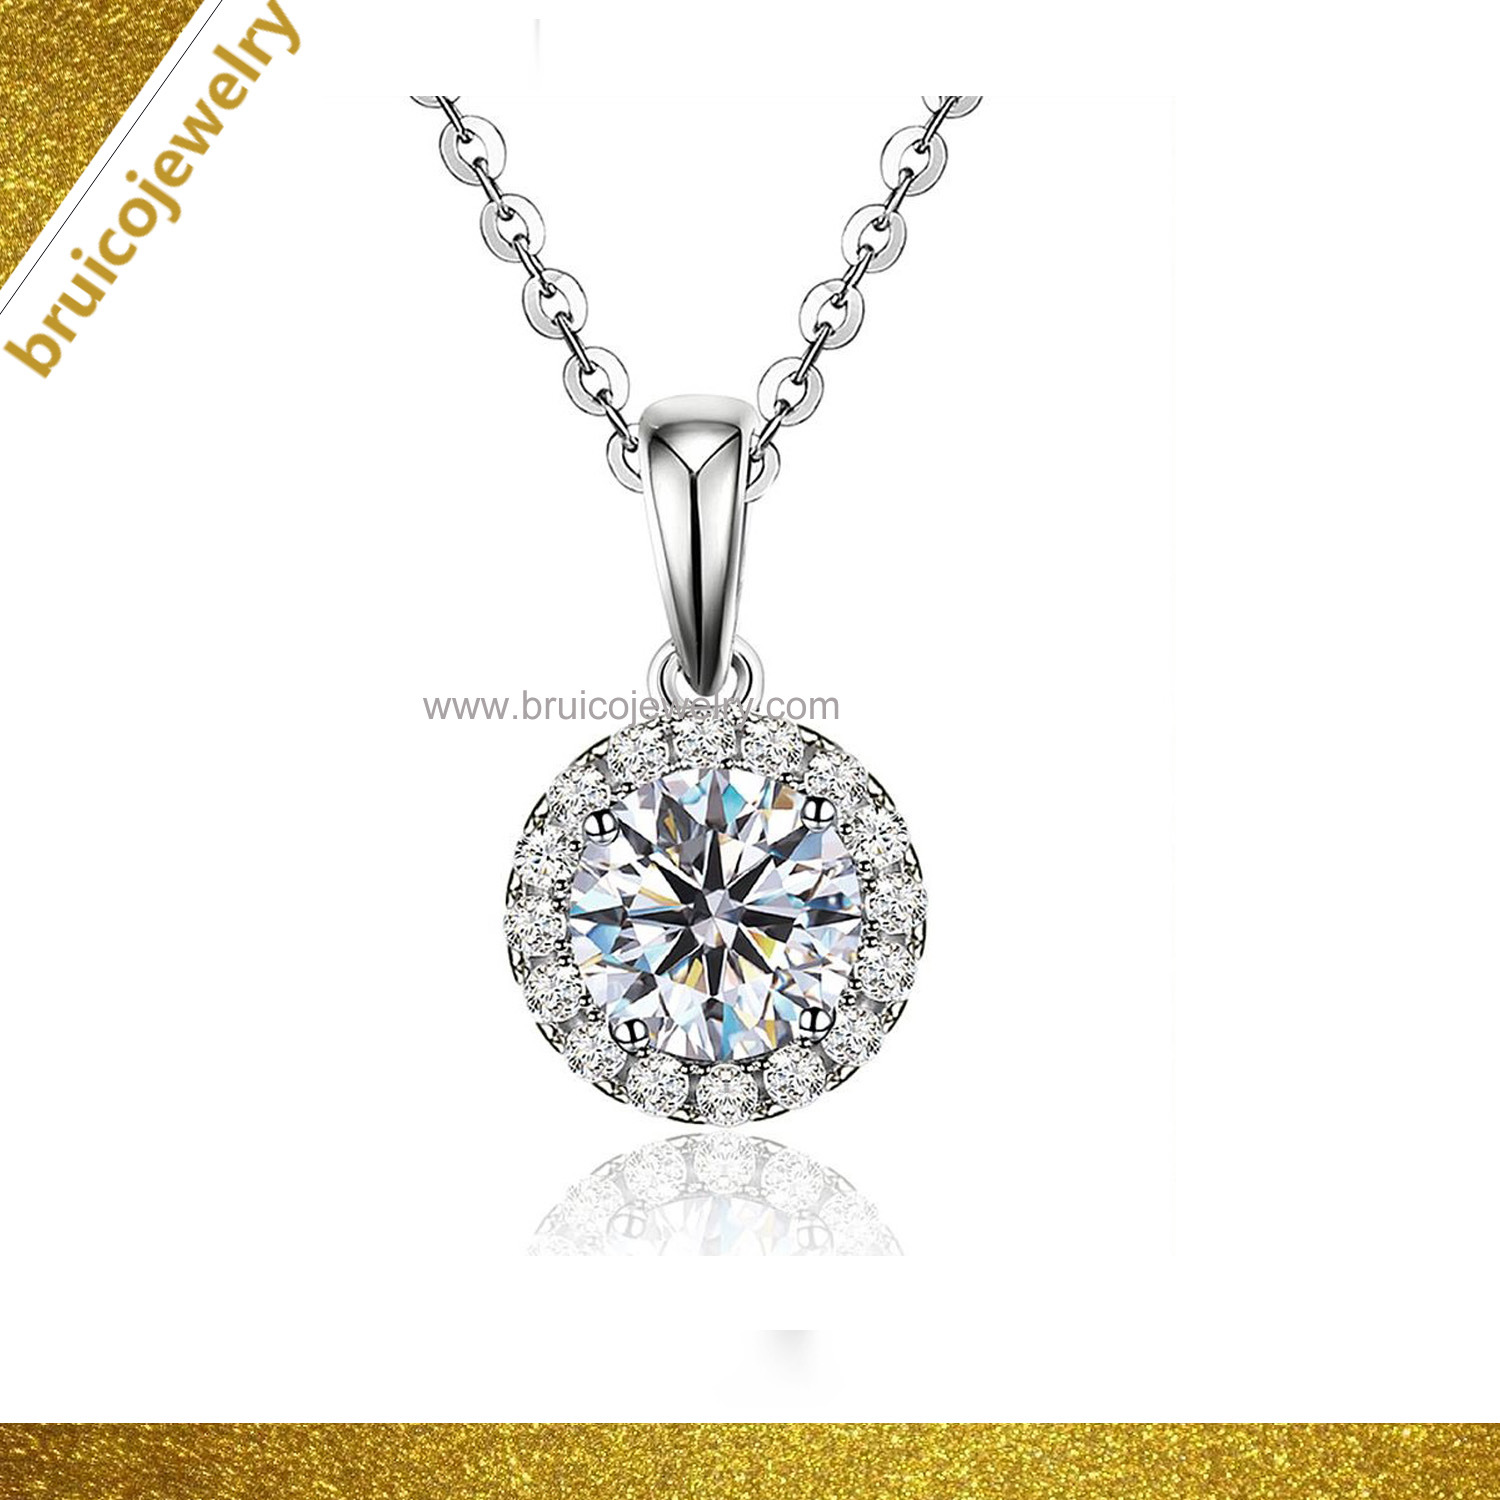 Elegant 925 Silver Jewelry Custom Round Gold Pendant Jewellery Necklaces with Zircon for Women pictures & photos